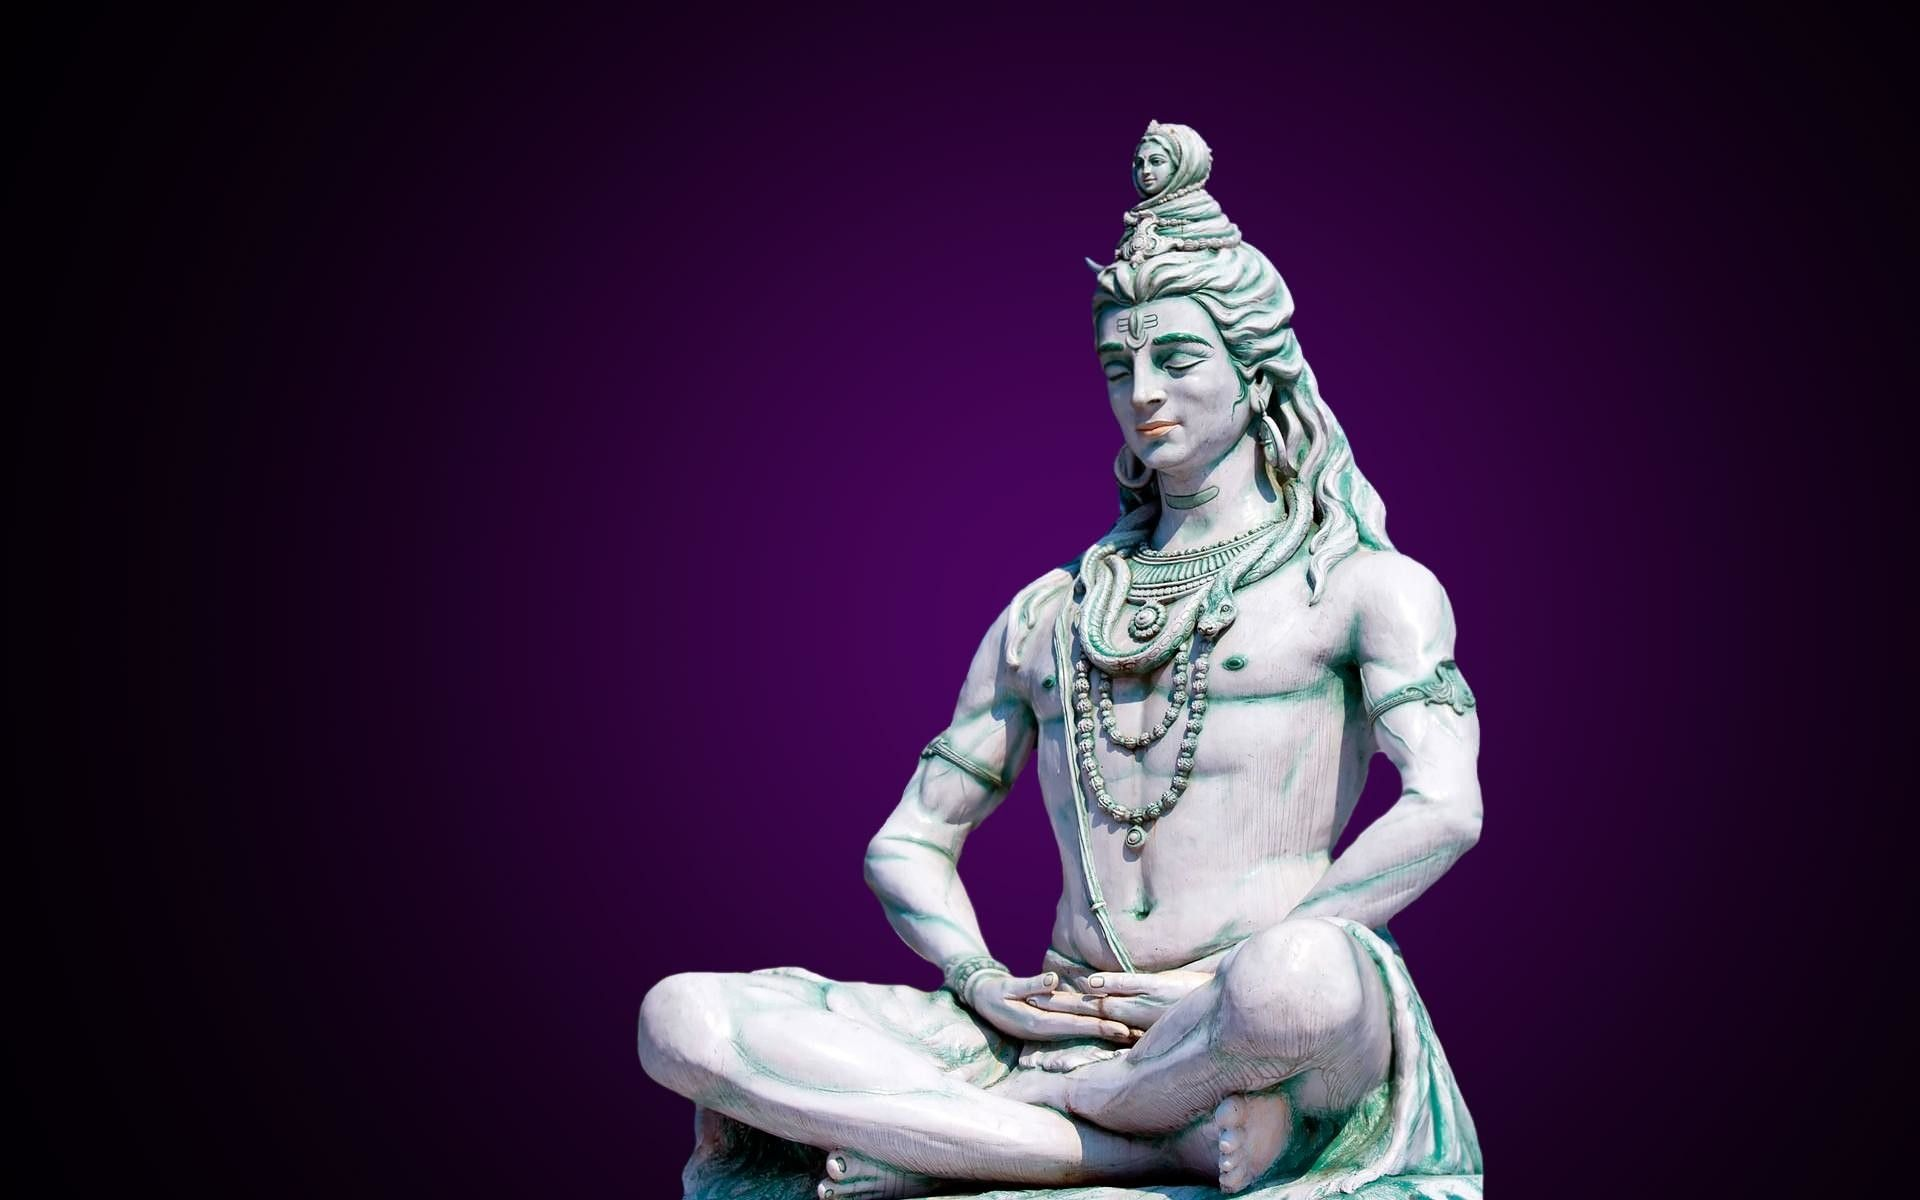 1920x1200 Lord Shiva Wallpapers High Resolution Free Download